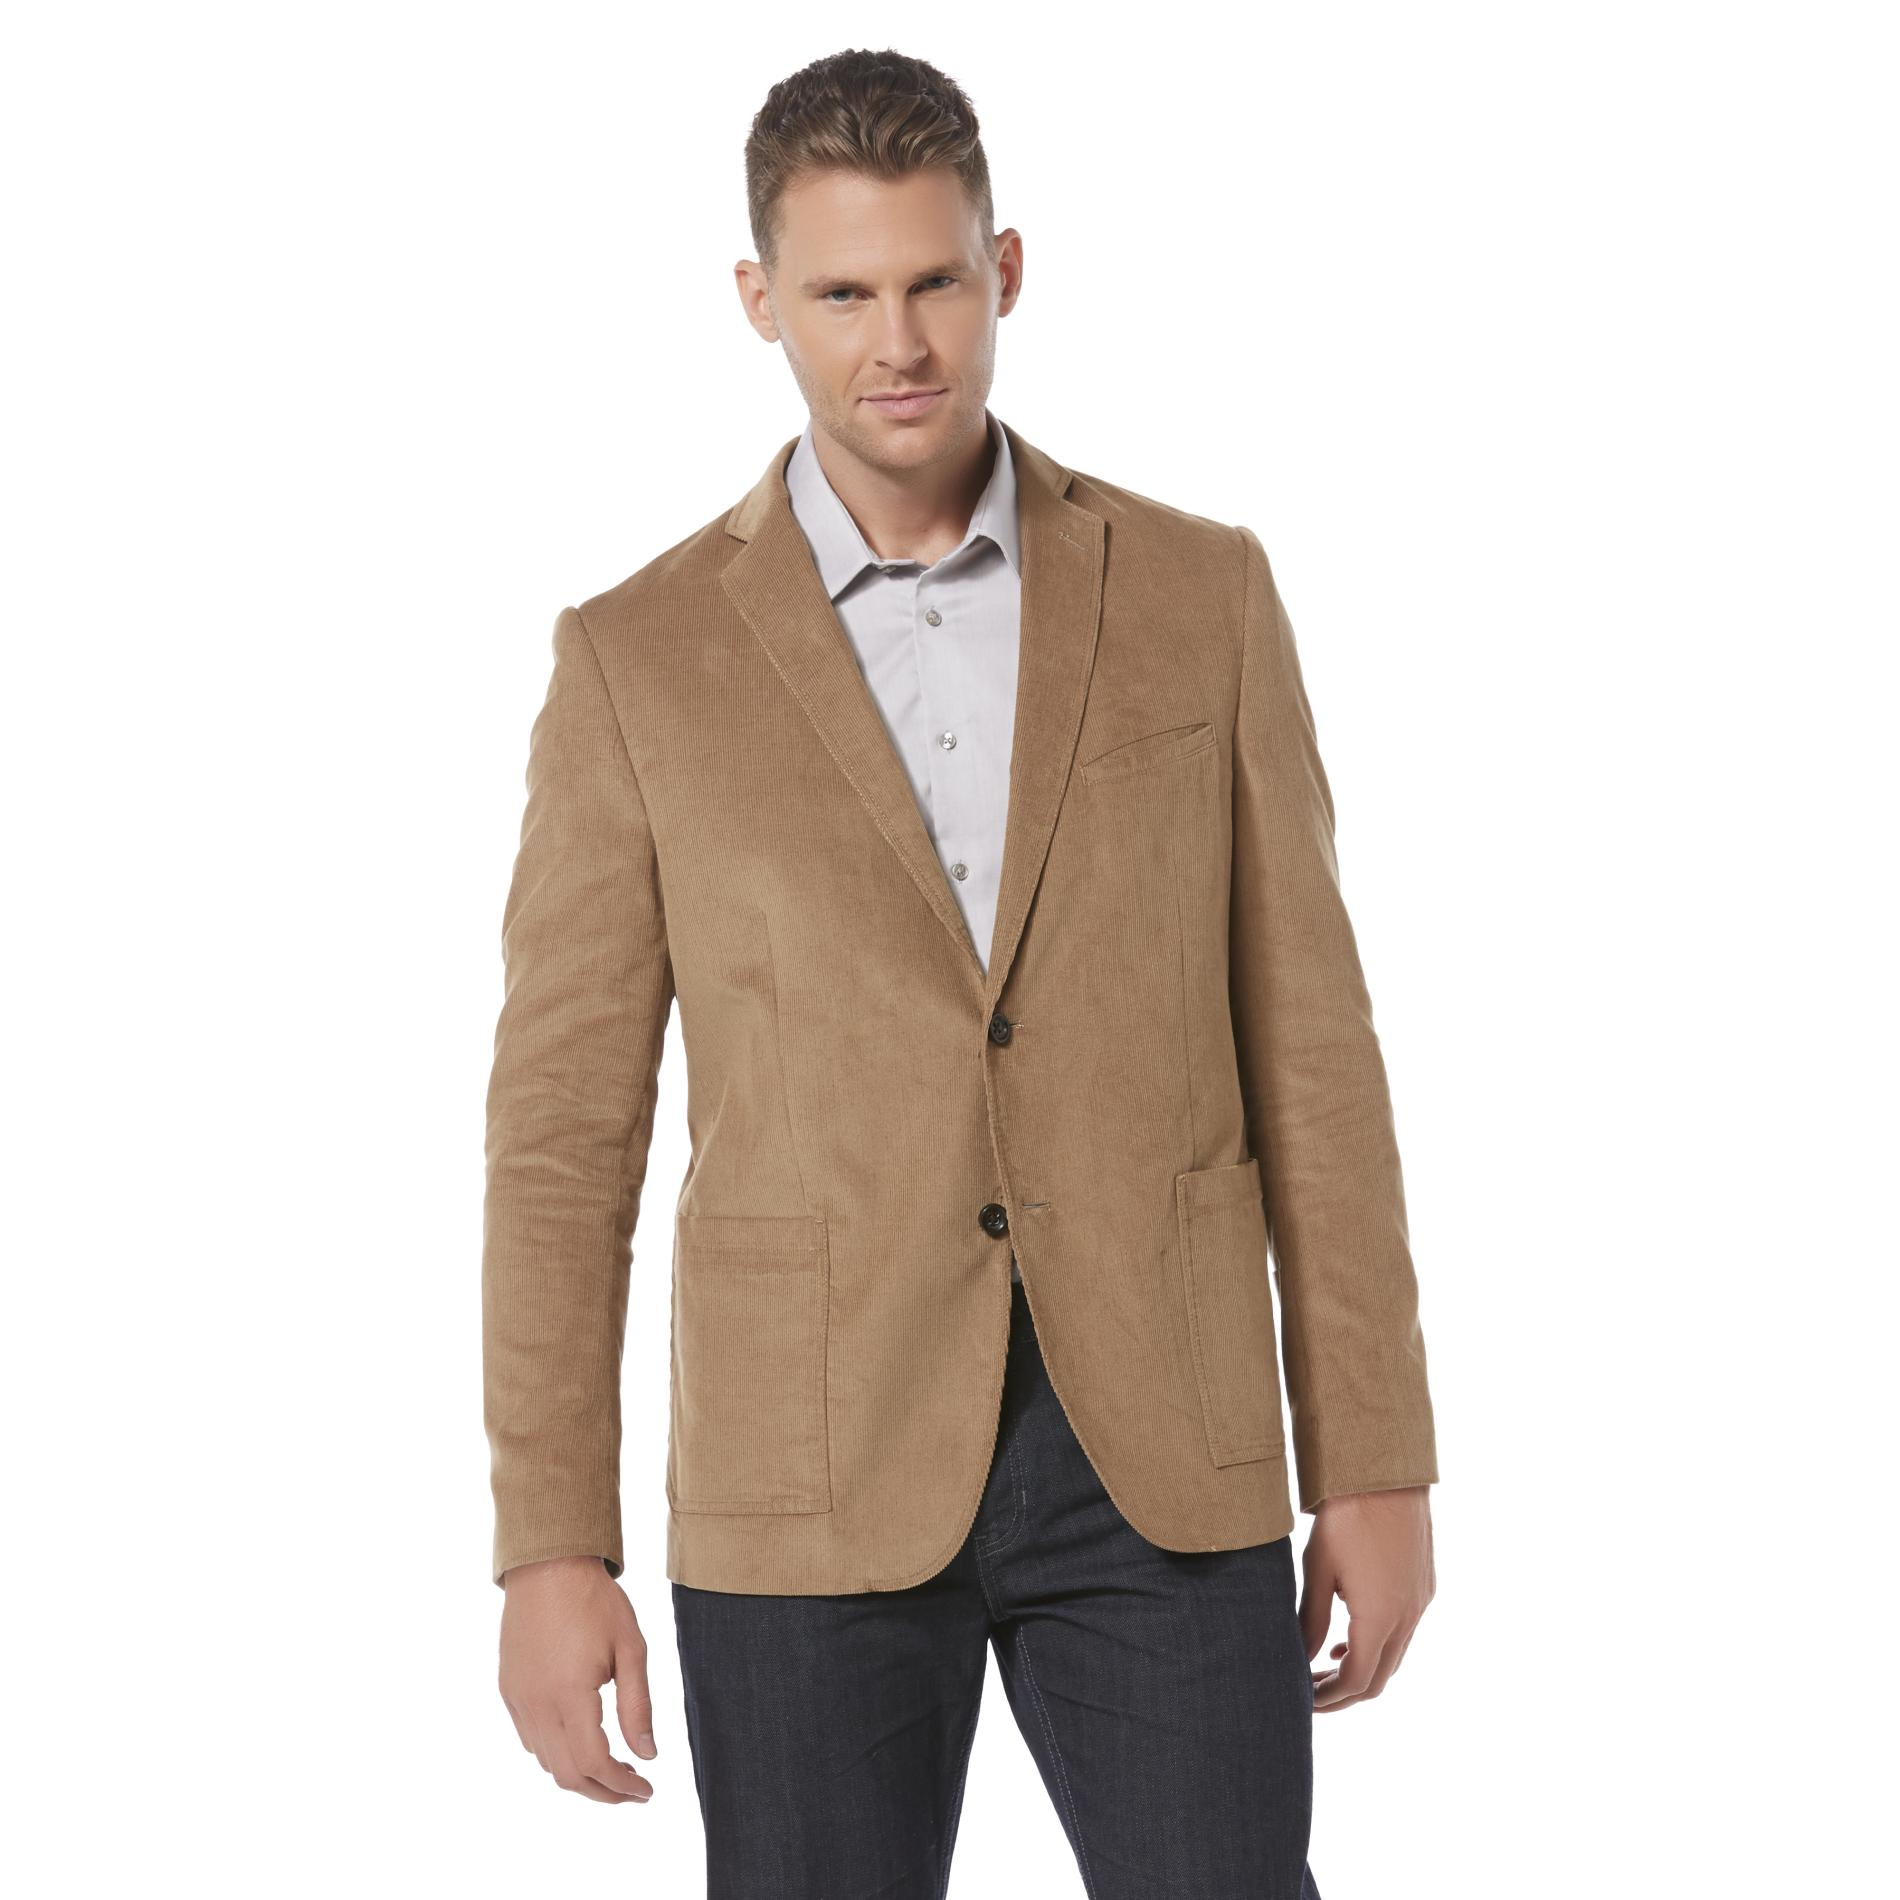 Unlike leather, corduroy does not look better with age. Retire anything with too-worn cuffs, or get messed-up elbows updated with a suede patch. If it's too far gone (and you should know when that happens), pick up a crisp new blazer with an updated fit.